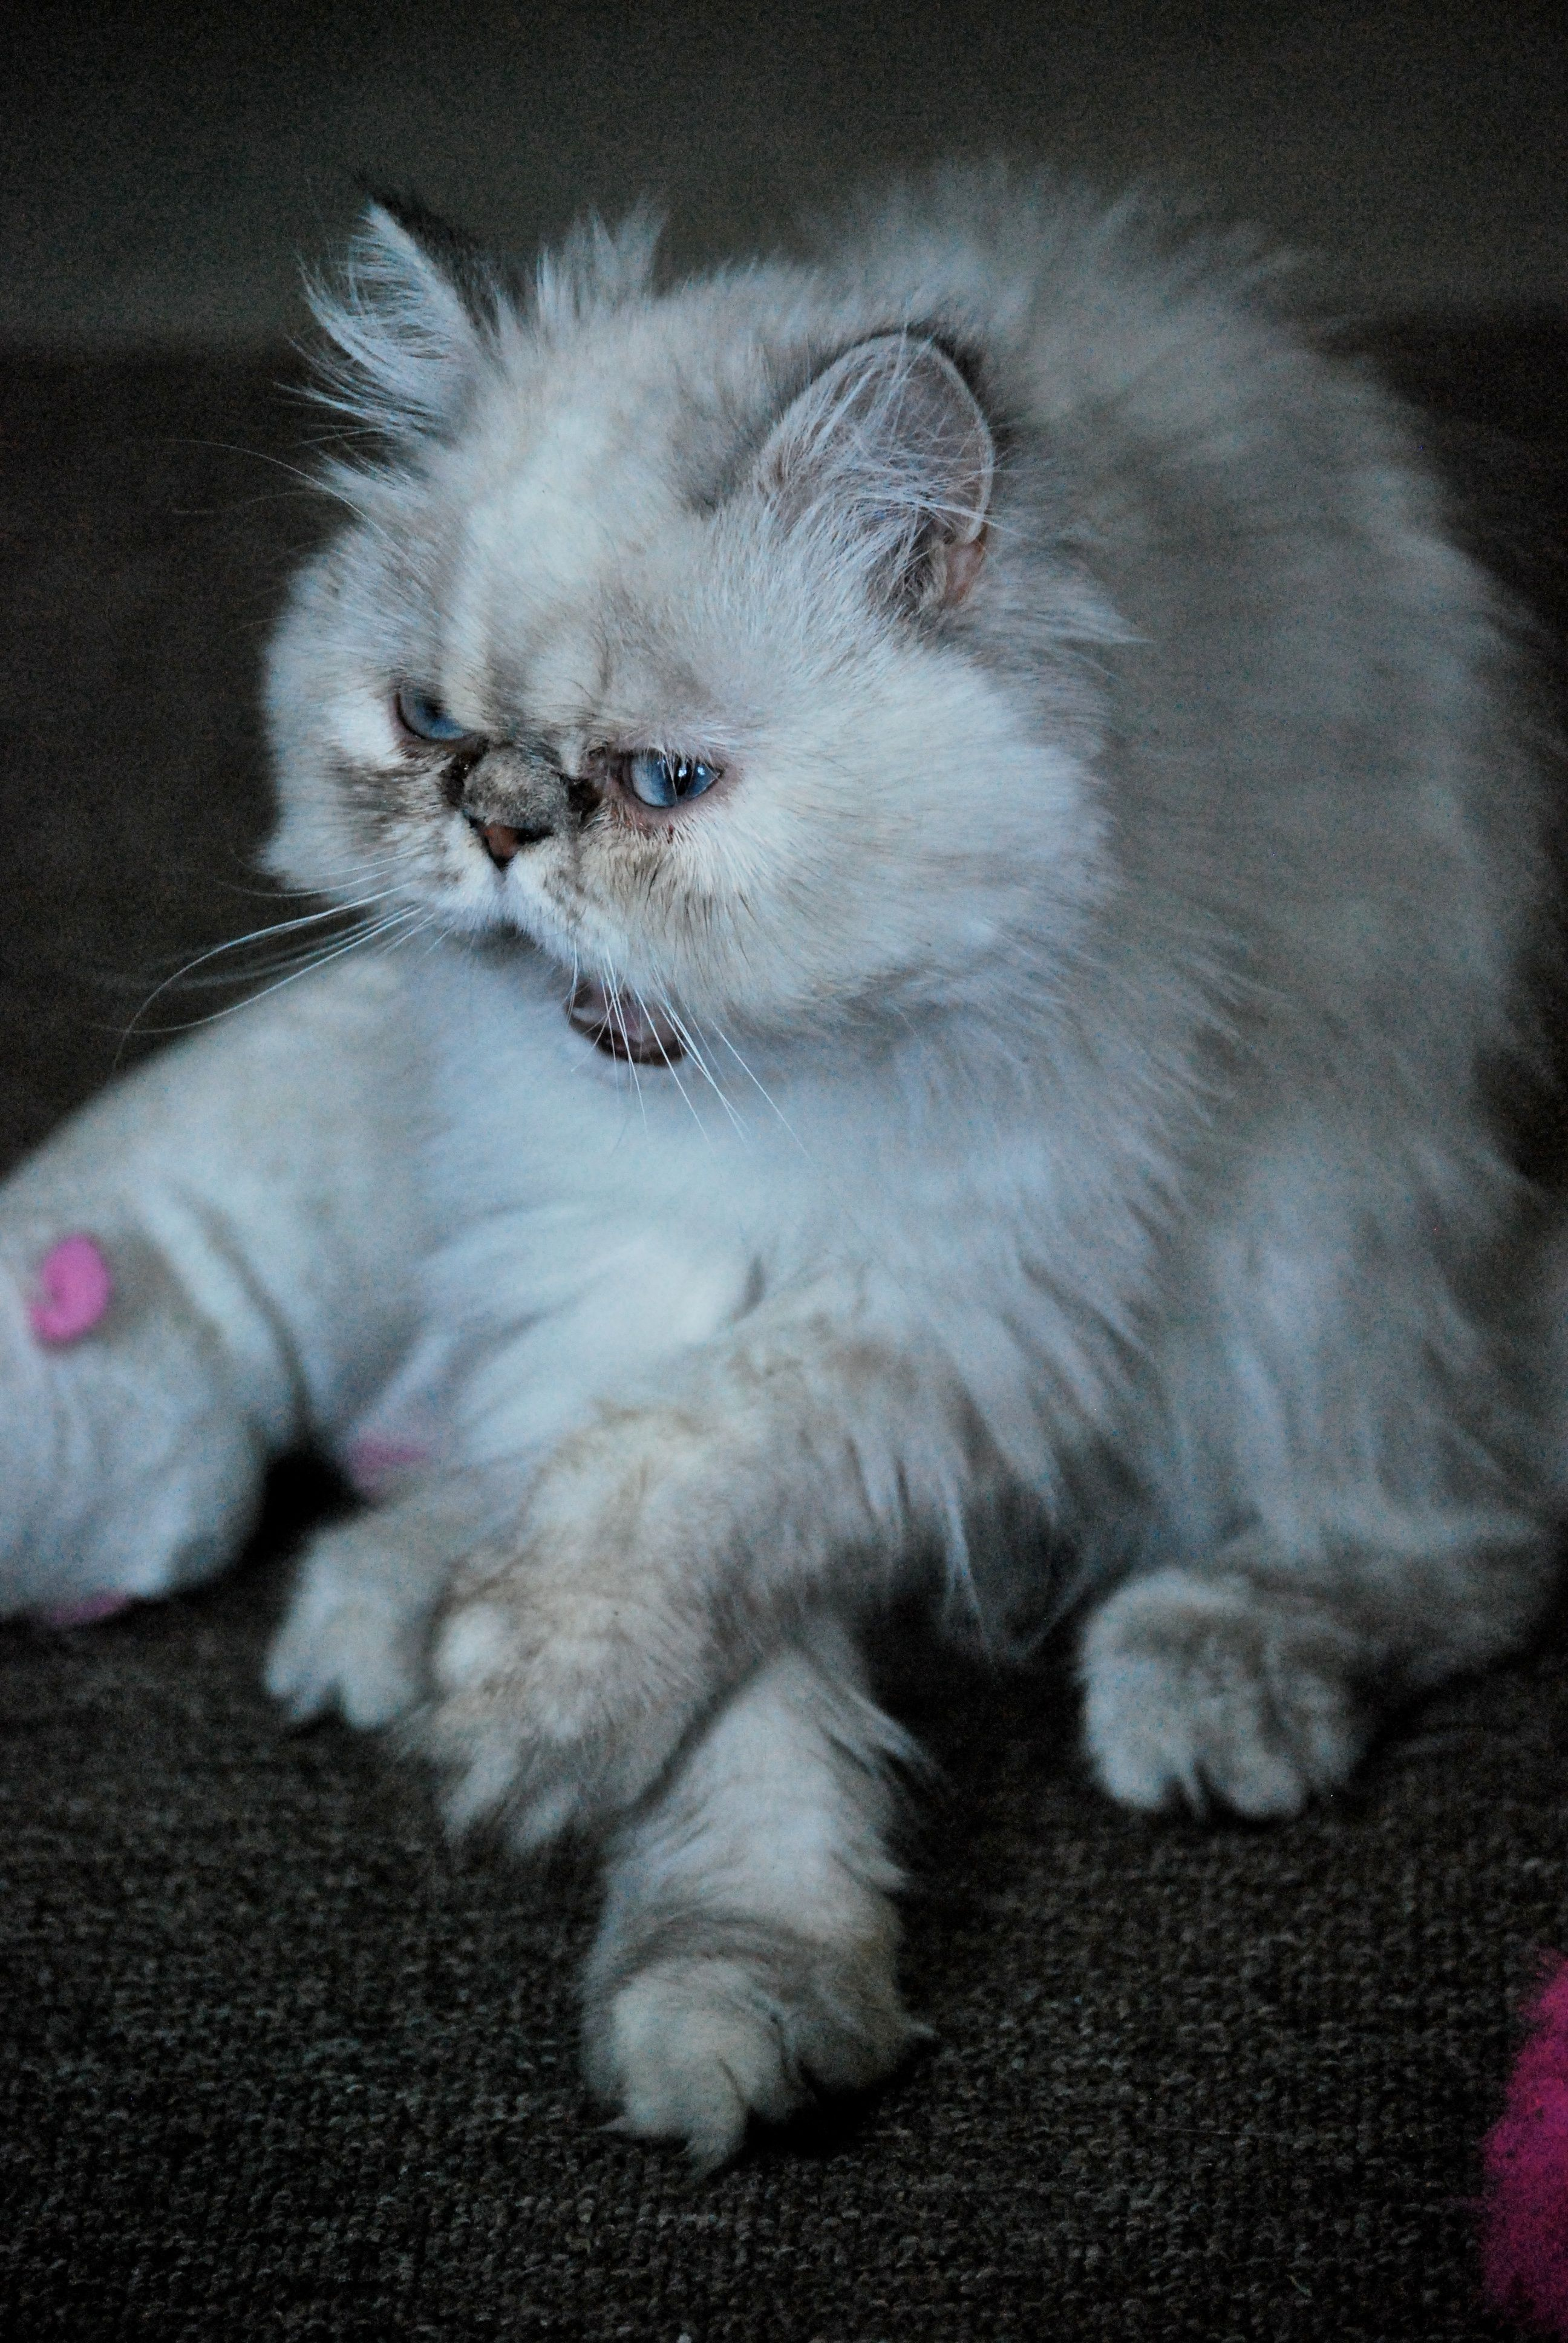 Cat Scratching Tips How to Prevent and Stop Why do